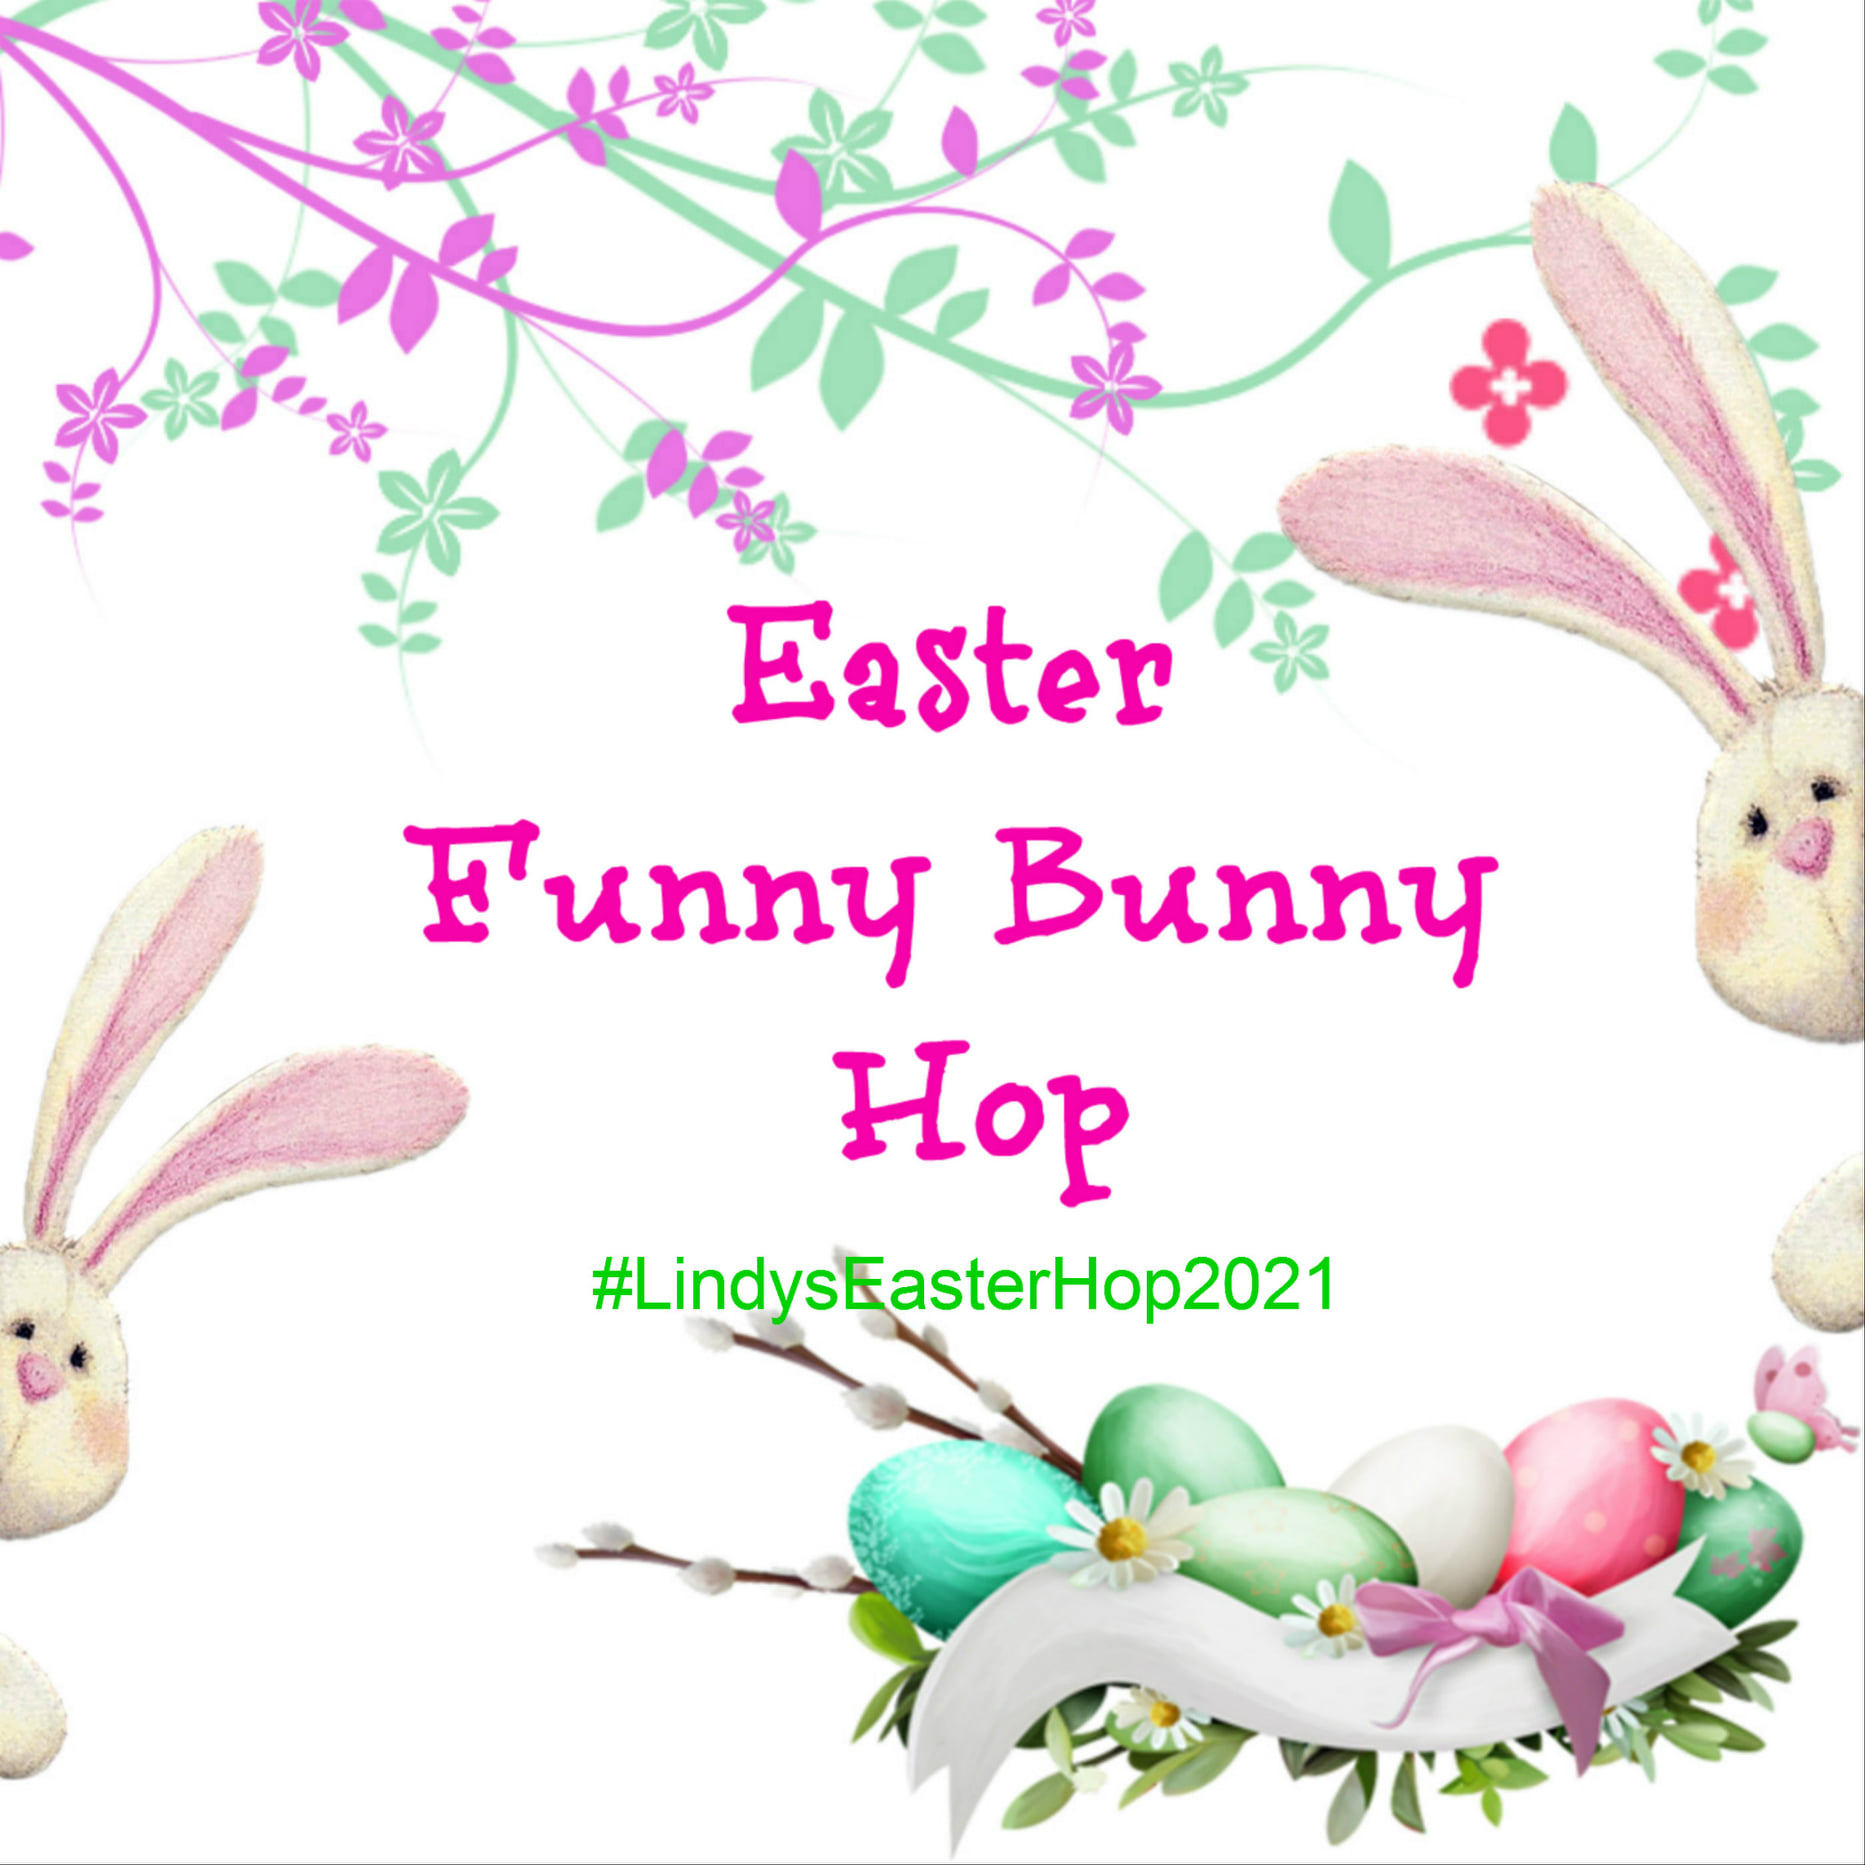 Are you ready for the Lindy's Easter Bunny Hop?